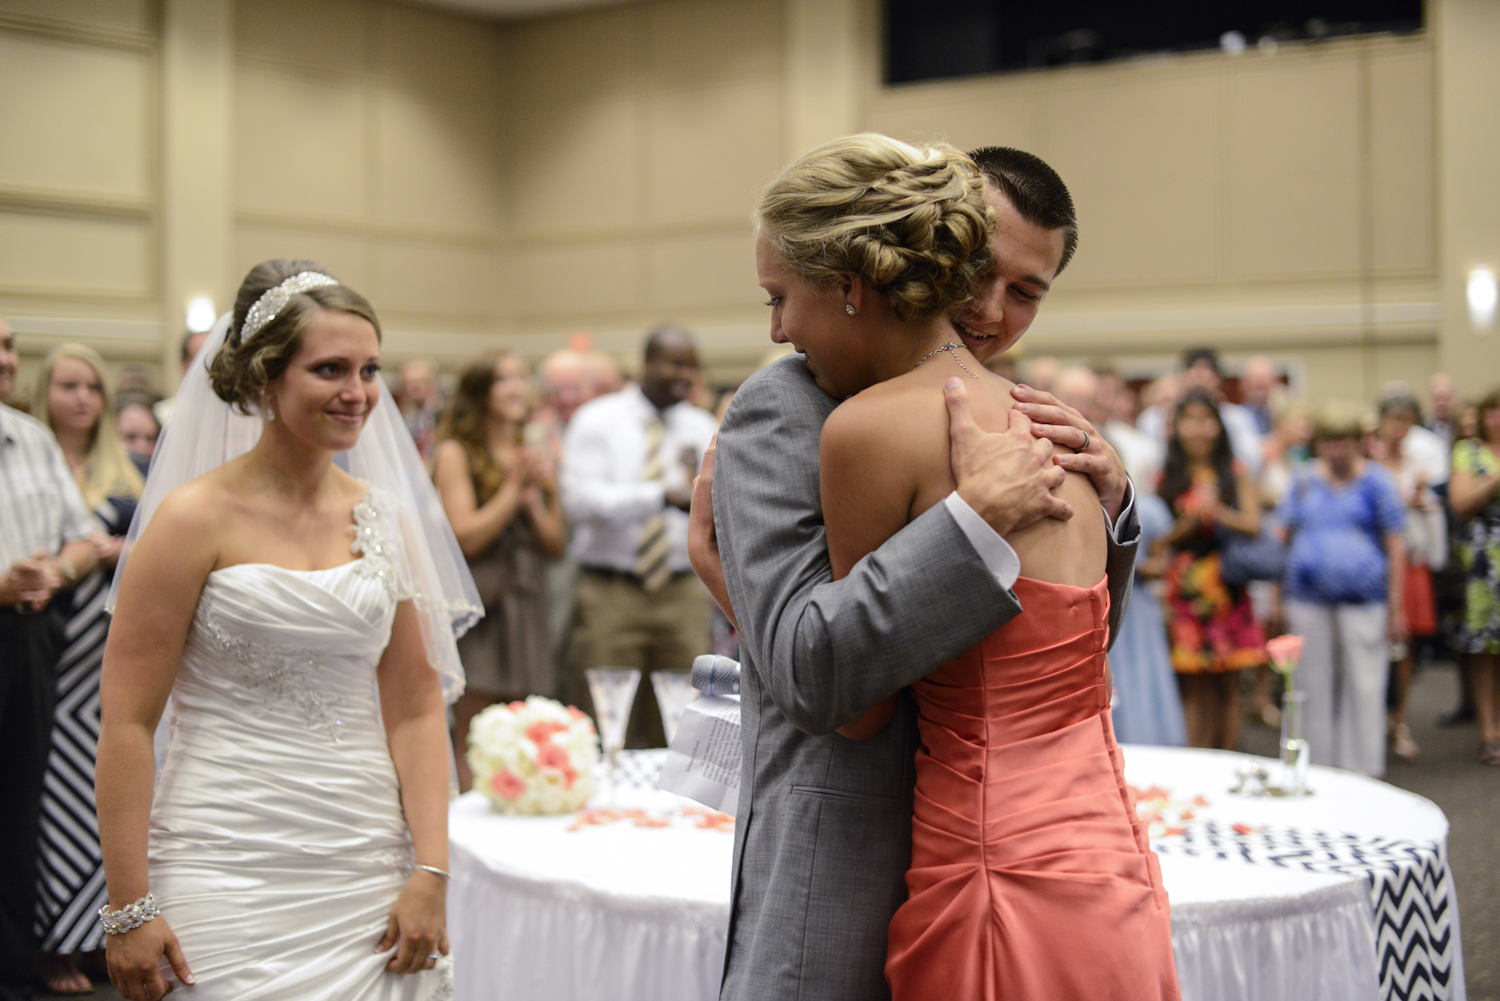 Groom and bridesmaid hugging after wedding toasts